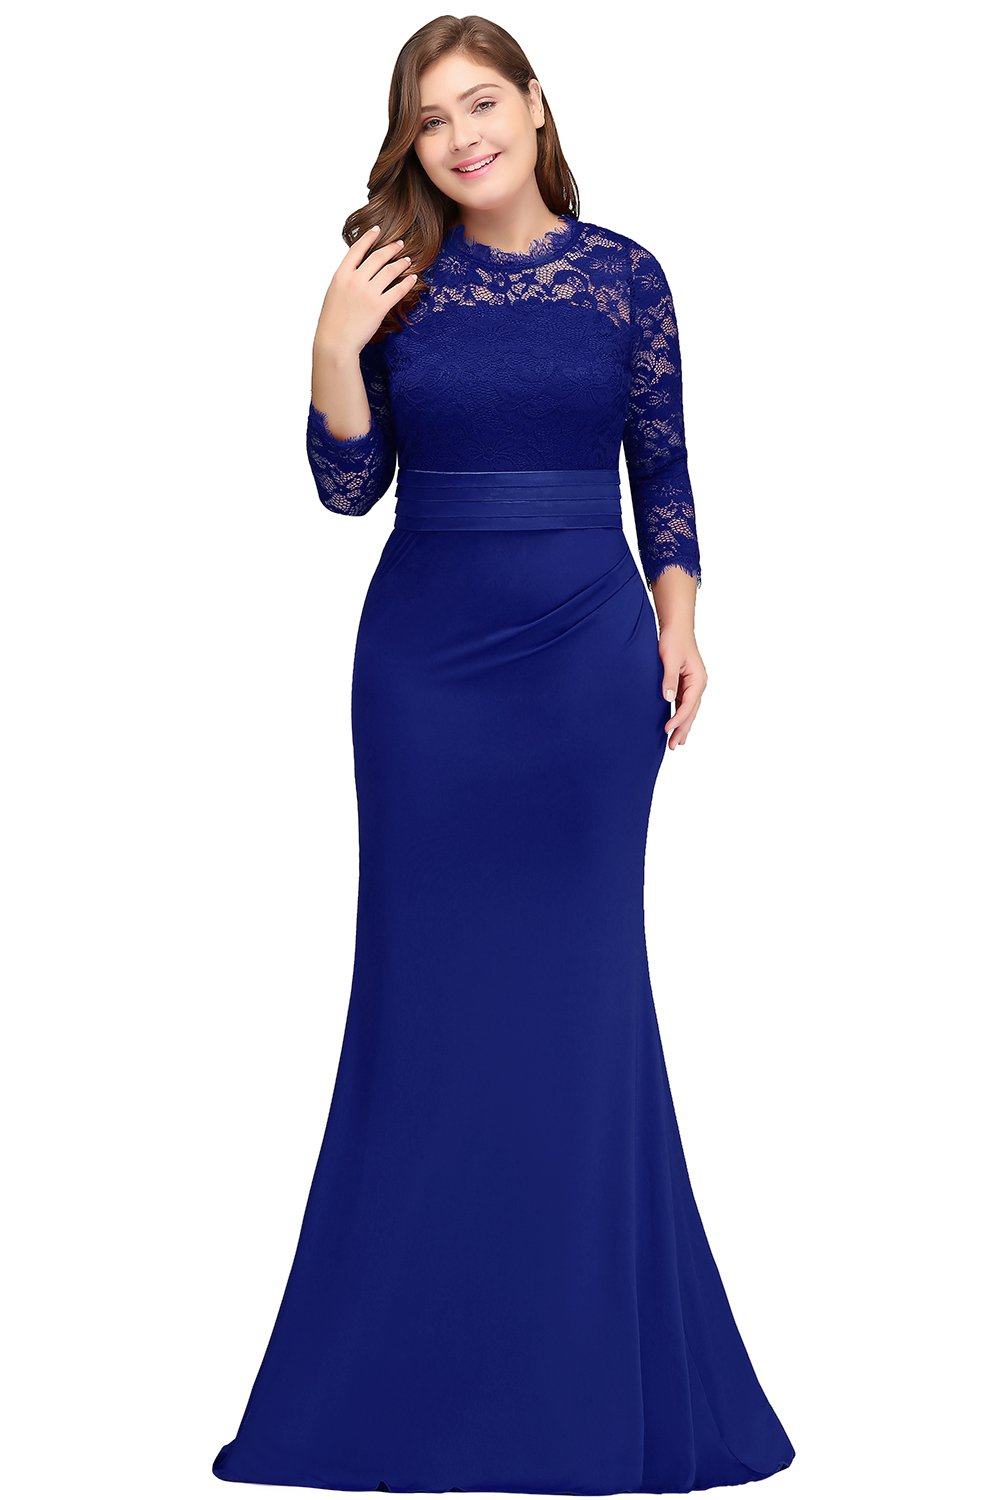 Women Plus Size Formal Evening Dress Royal Blue 22W